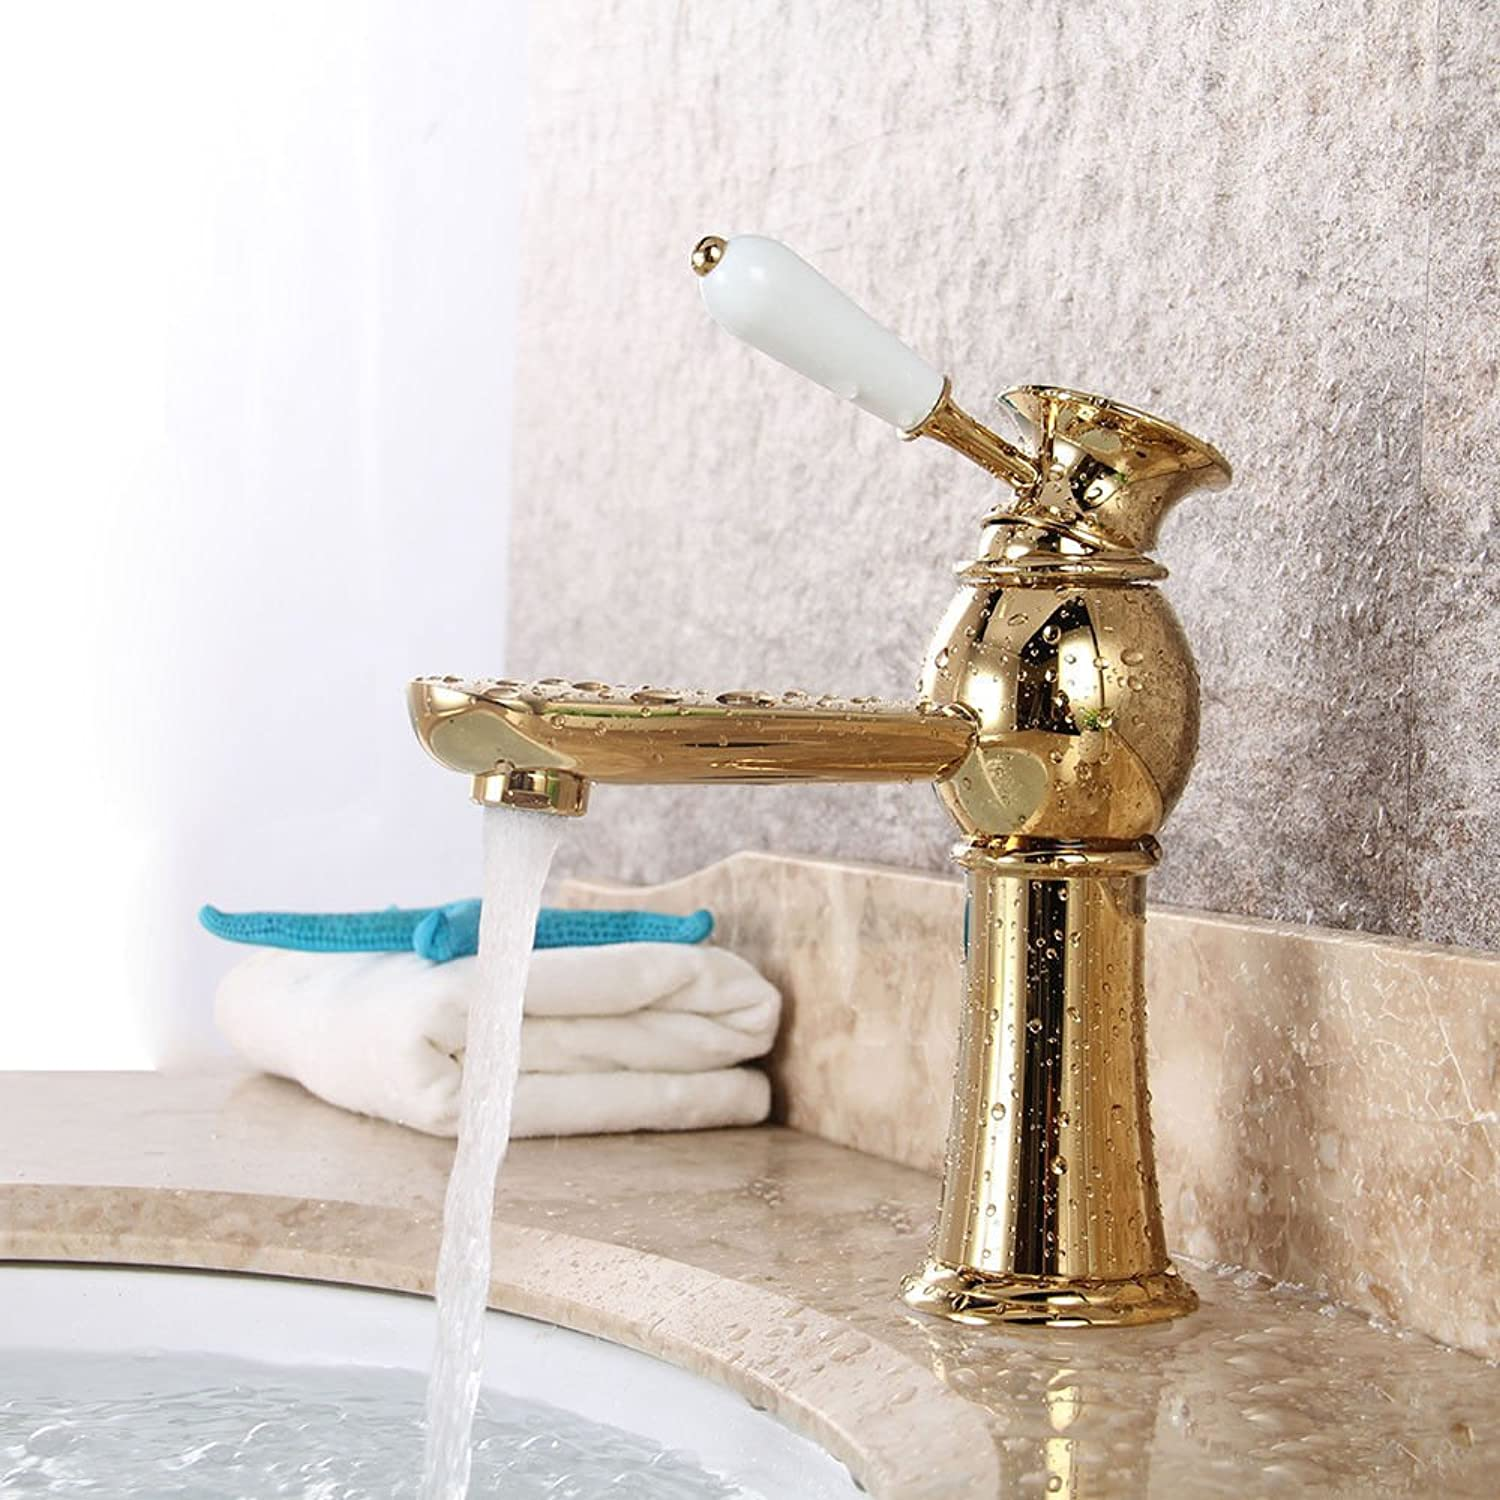 Hlluya Professional Sink Mixer Tap Kitchen Faucet All copper single handle single hole bathroom basin mixer,gold